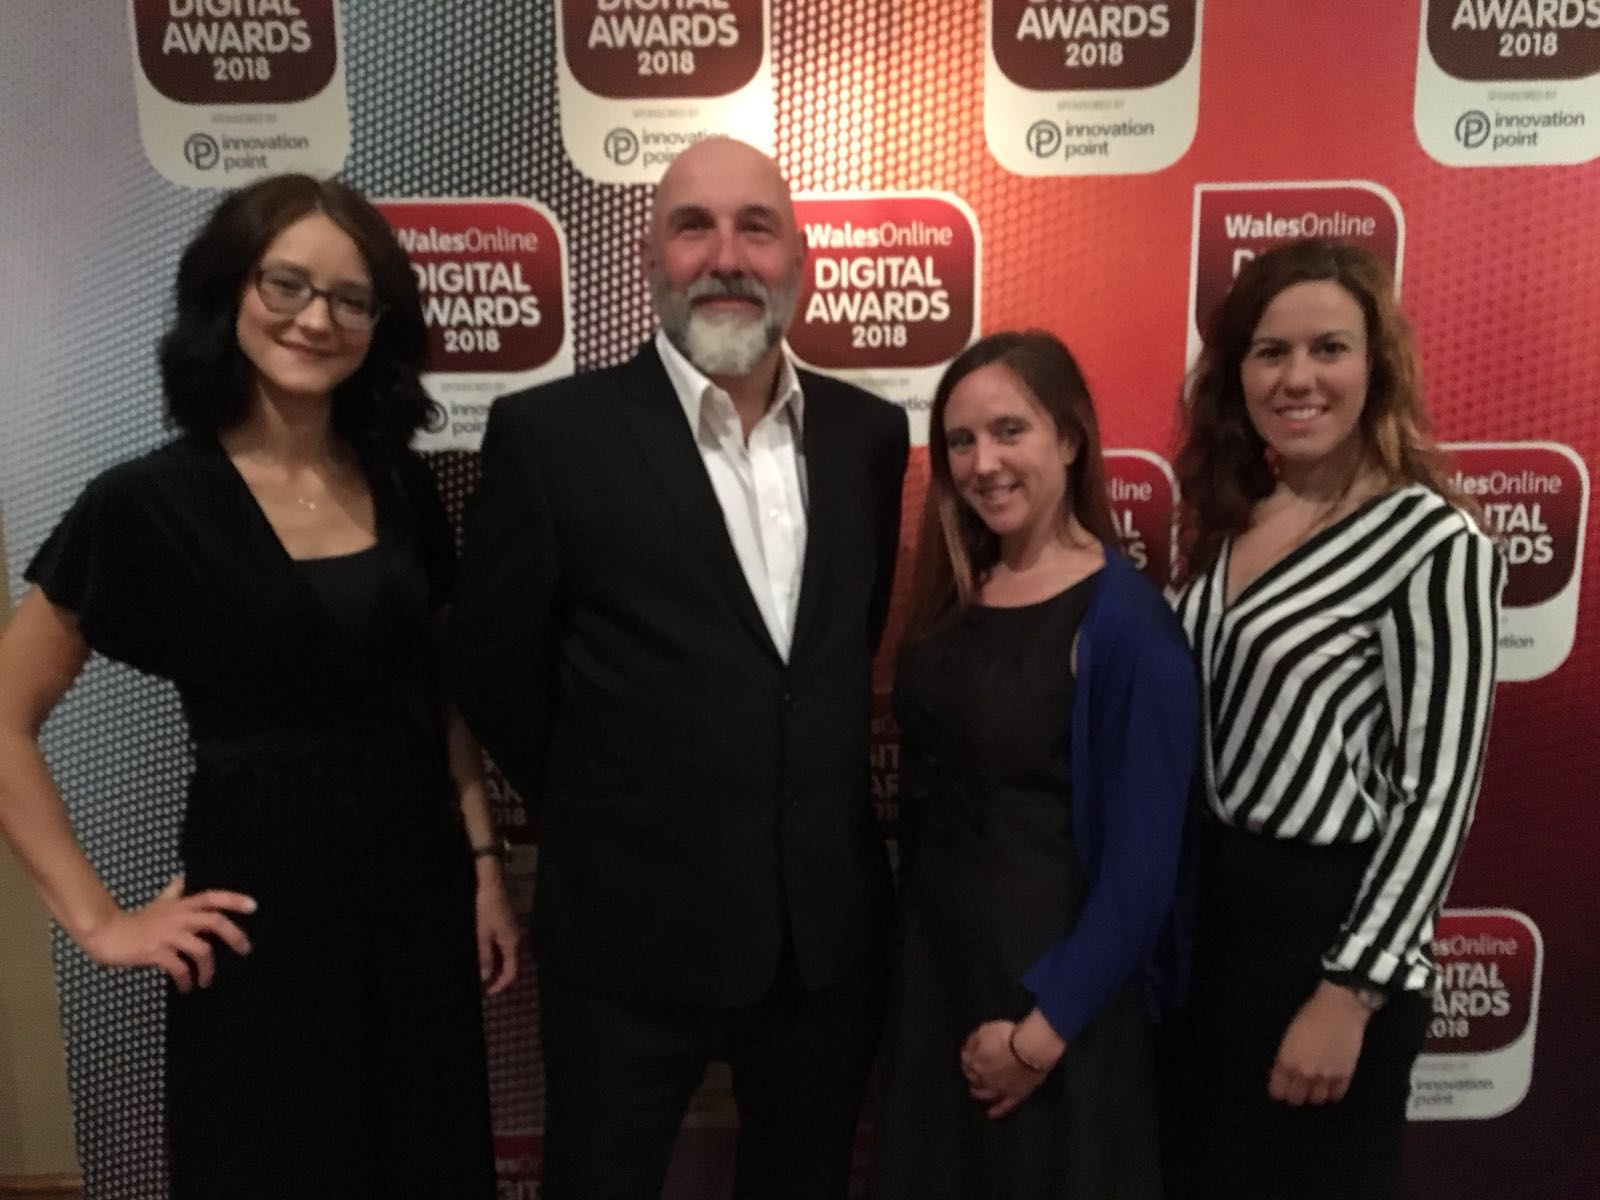 The ProMo team at the Digital Awards 2018